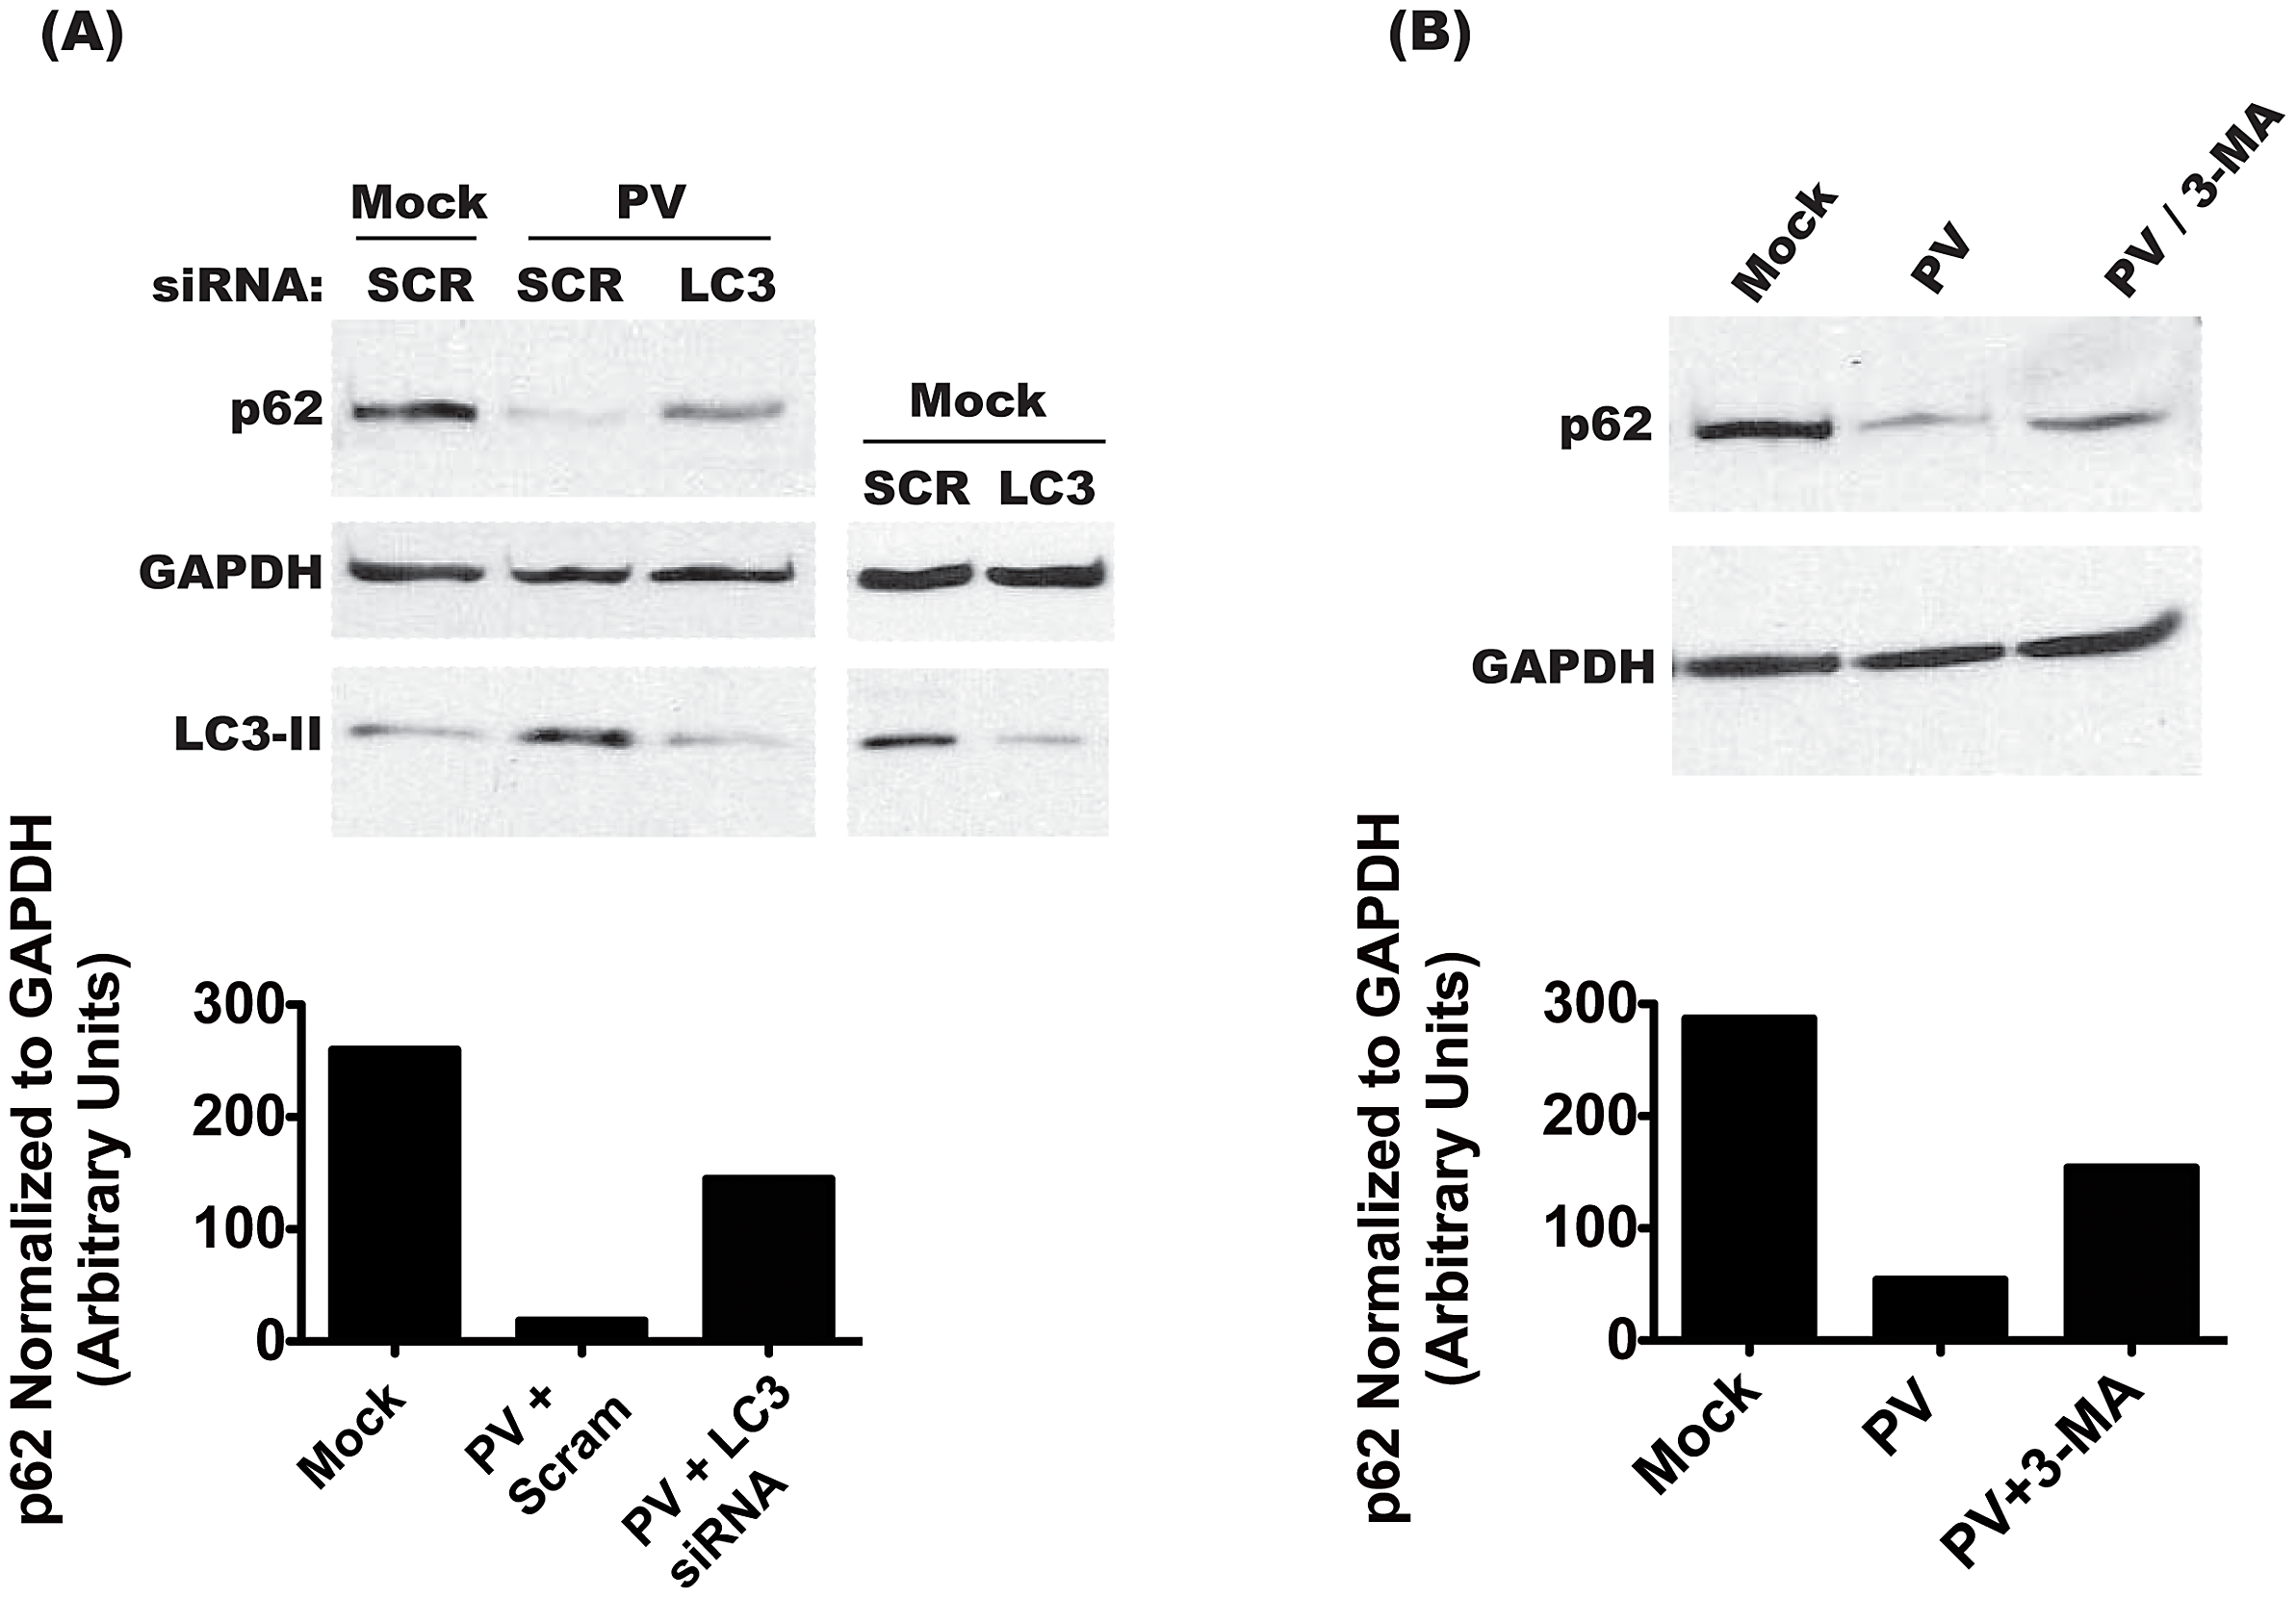 Degradation of p62 is dependent on the induction of autophagy.